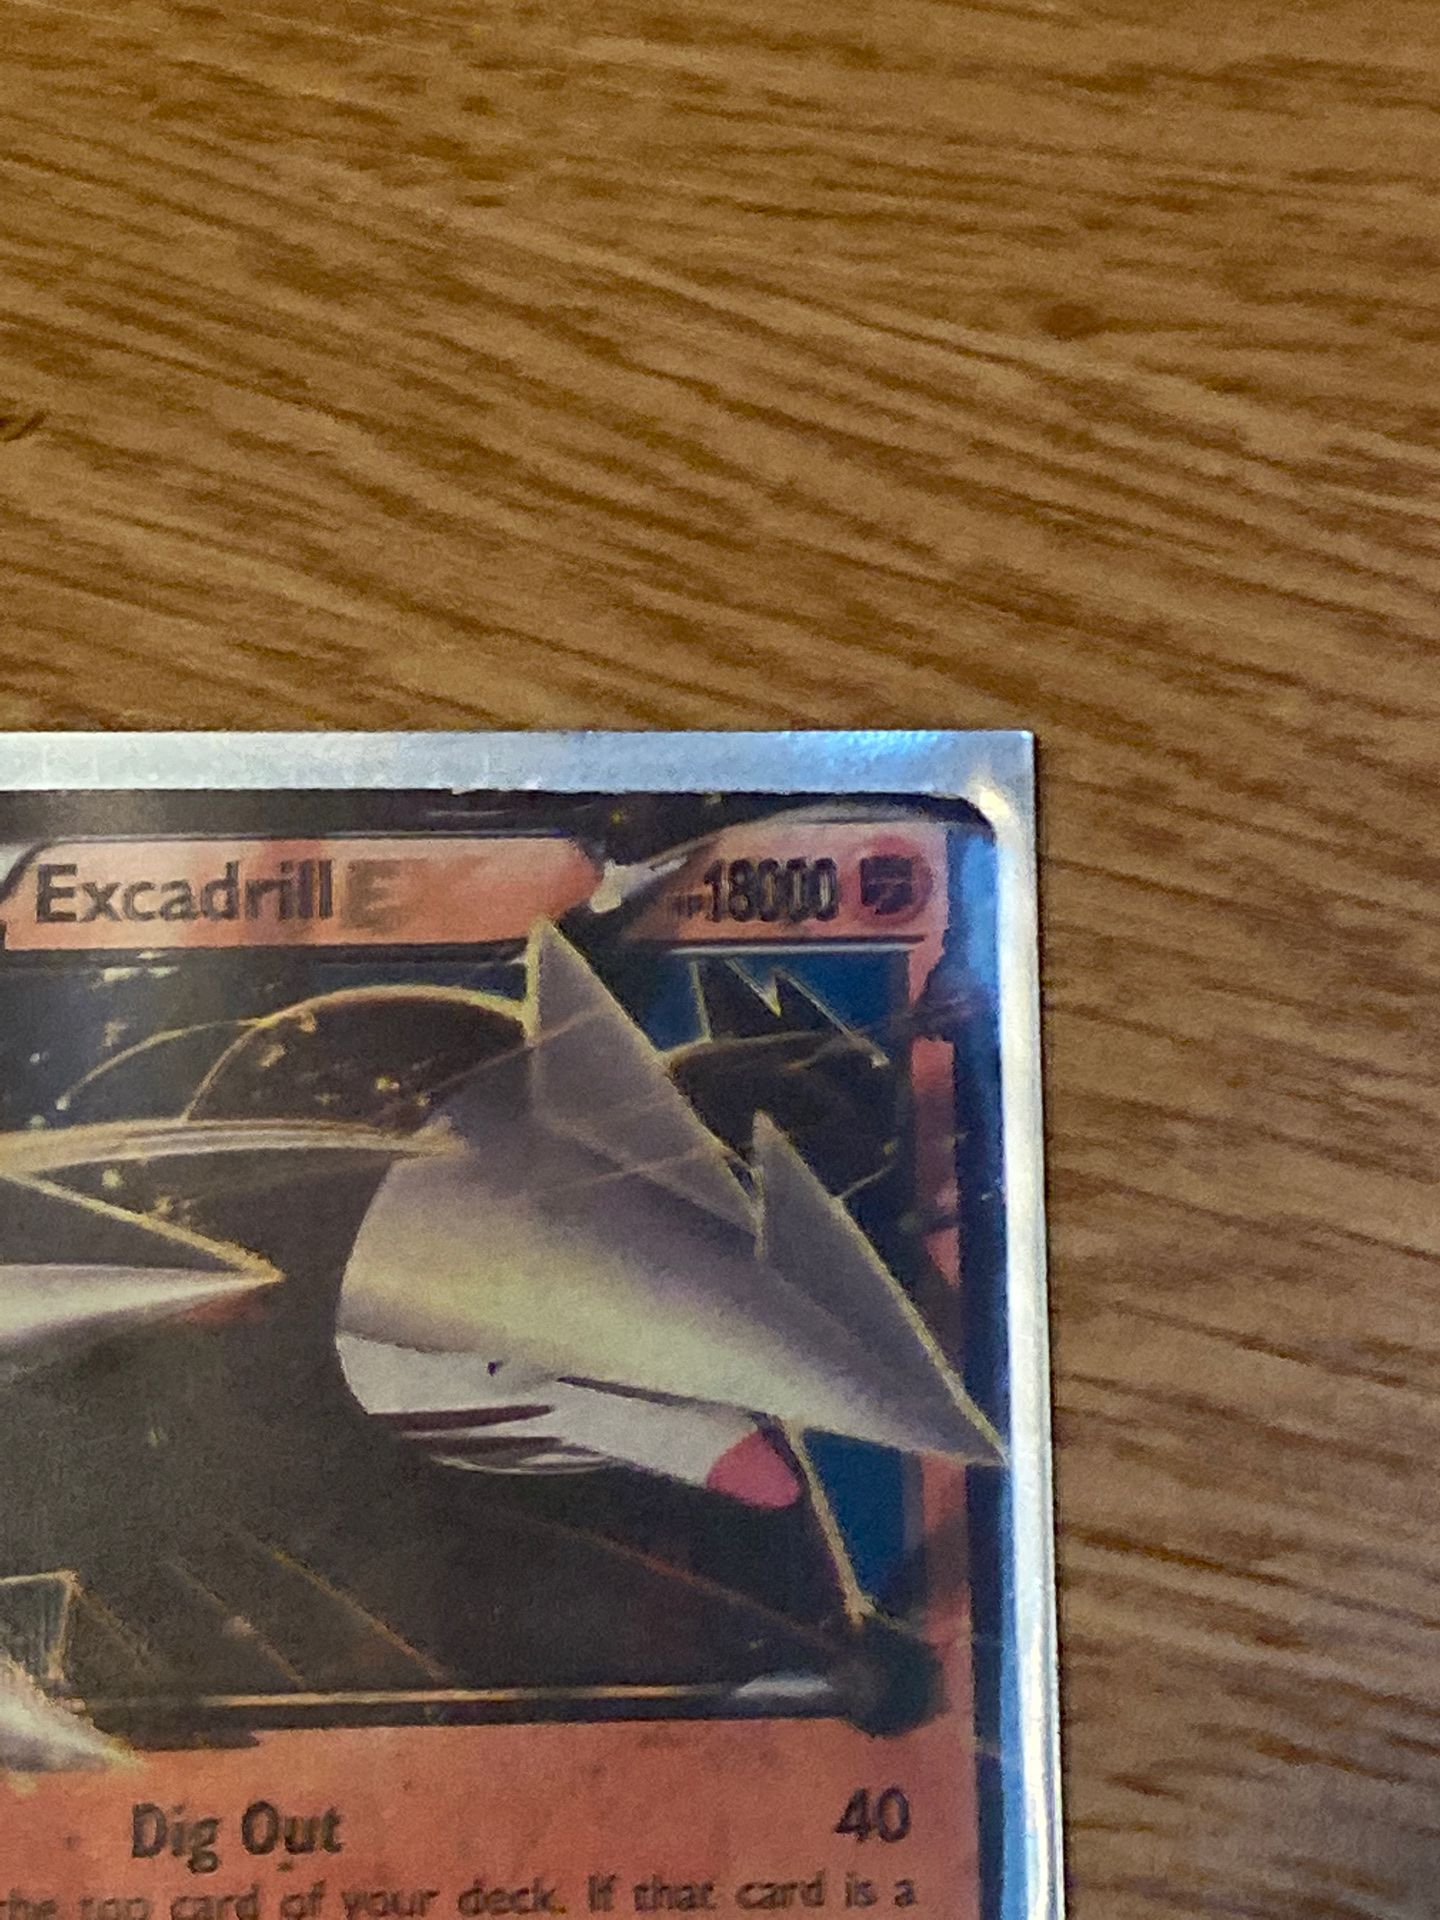 Mint condition Excadrill with 18000 health 2014 card. 100 dollars or best offer